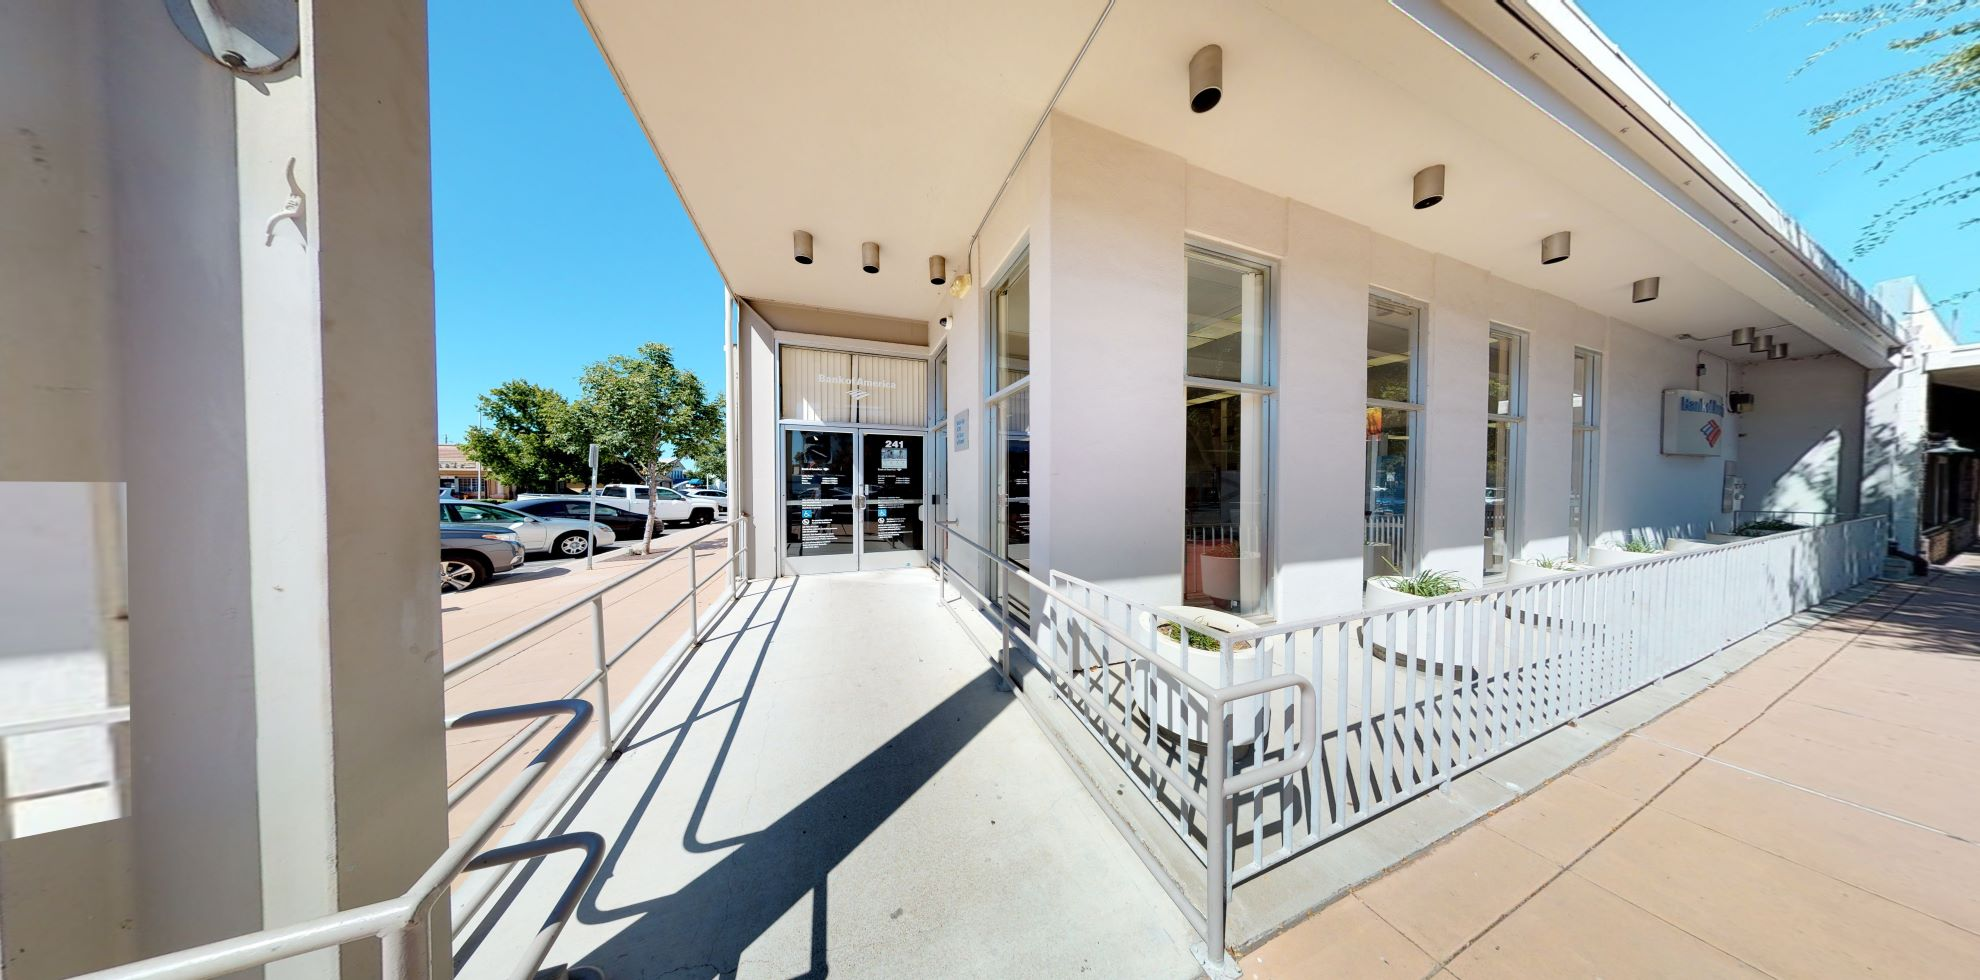 Bank of America financial center with walk-up ATM | 241 Oak St, Brentwood, CA 94513